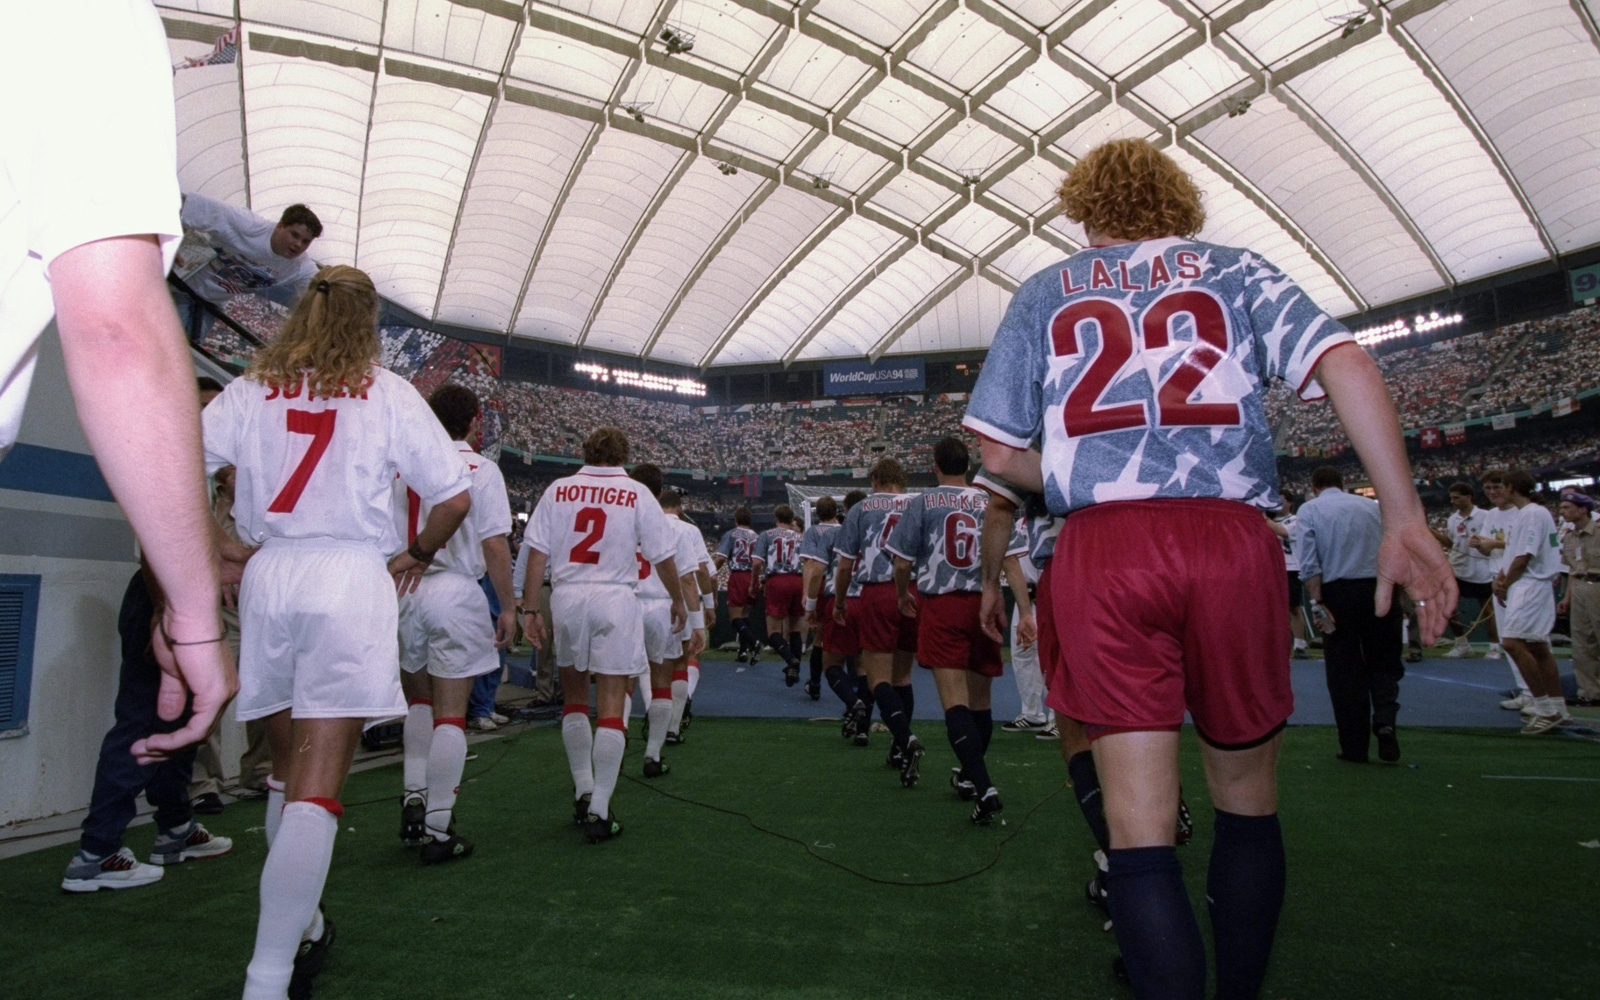 Alexi Lalas walks out of the tunnel and onto the Silverdome field, some 15 minutes from Birmingham, Michigan, where he was born.